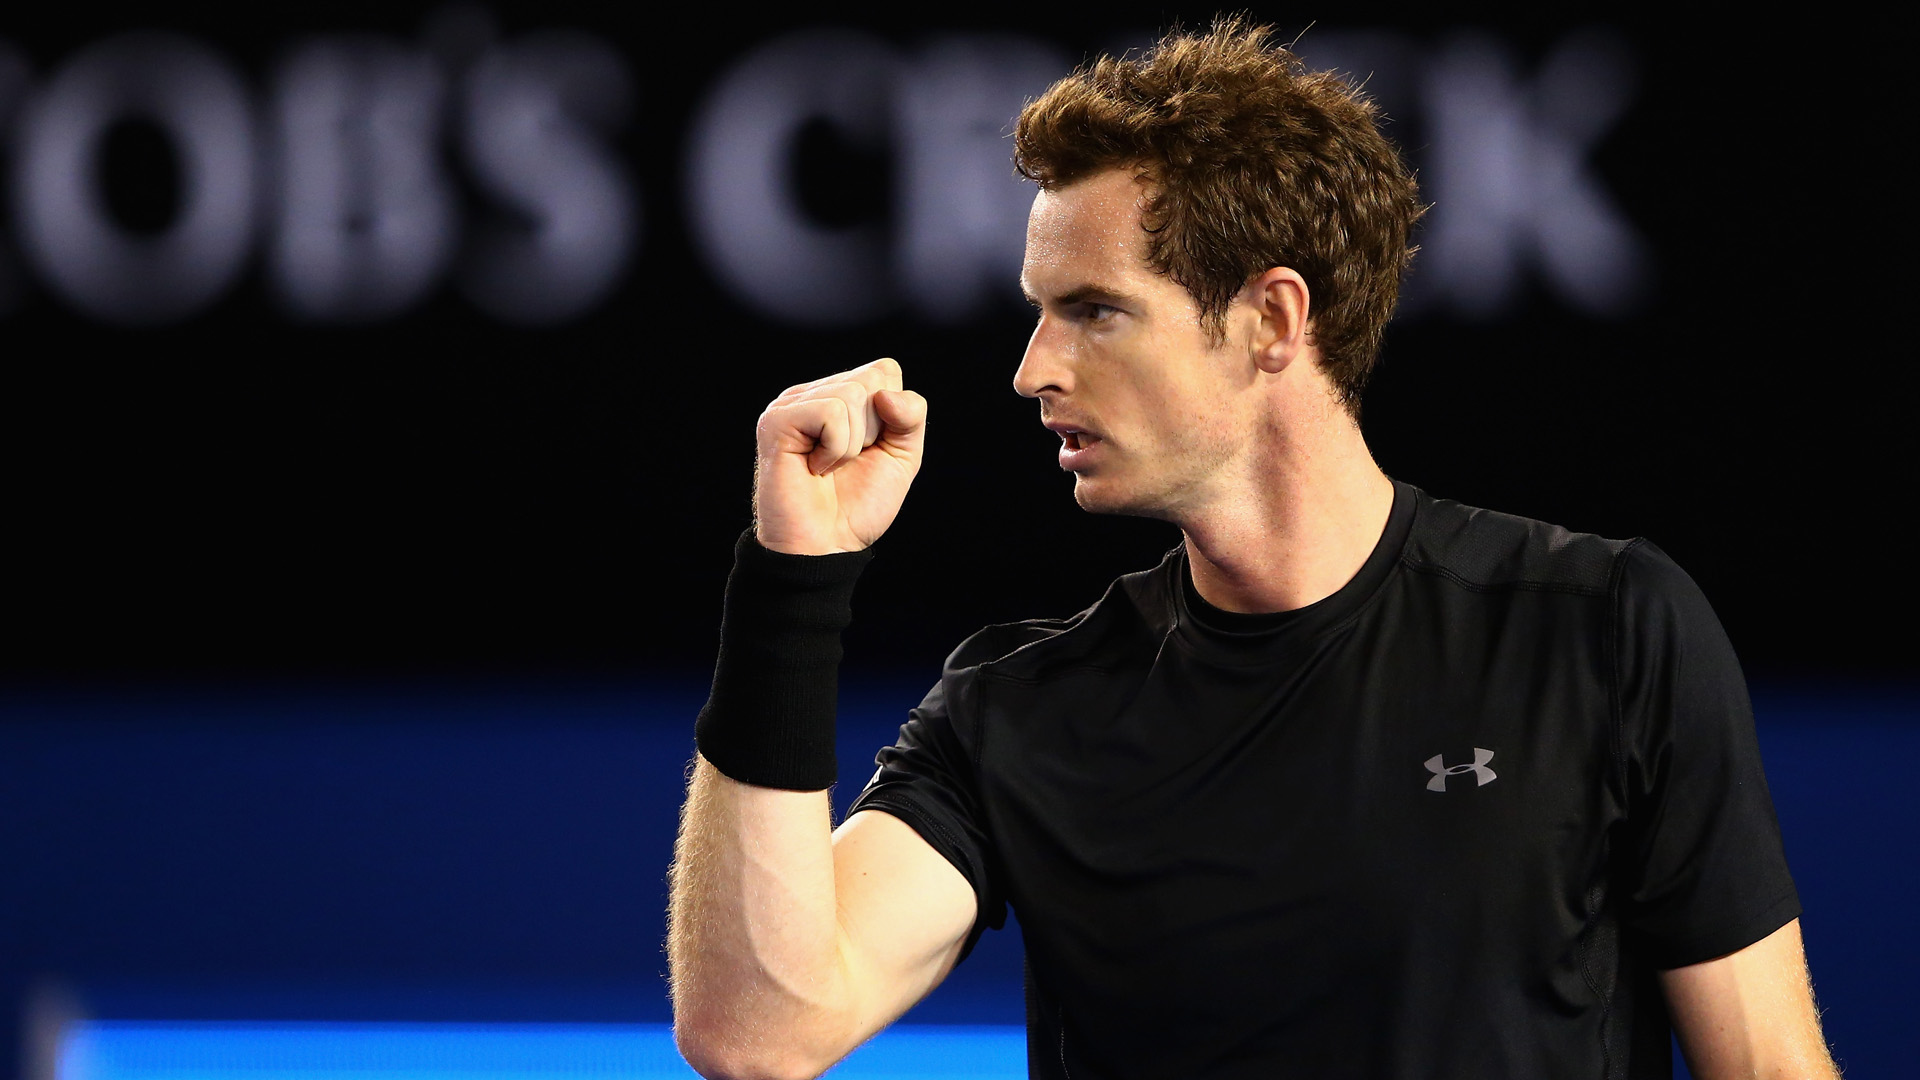 Andy Murray is through to the quarter-finals of the Australian Open after a roller